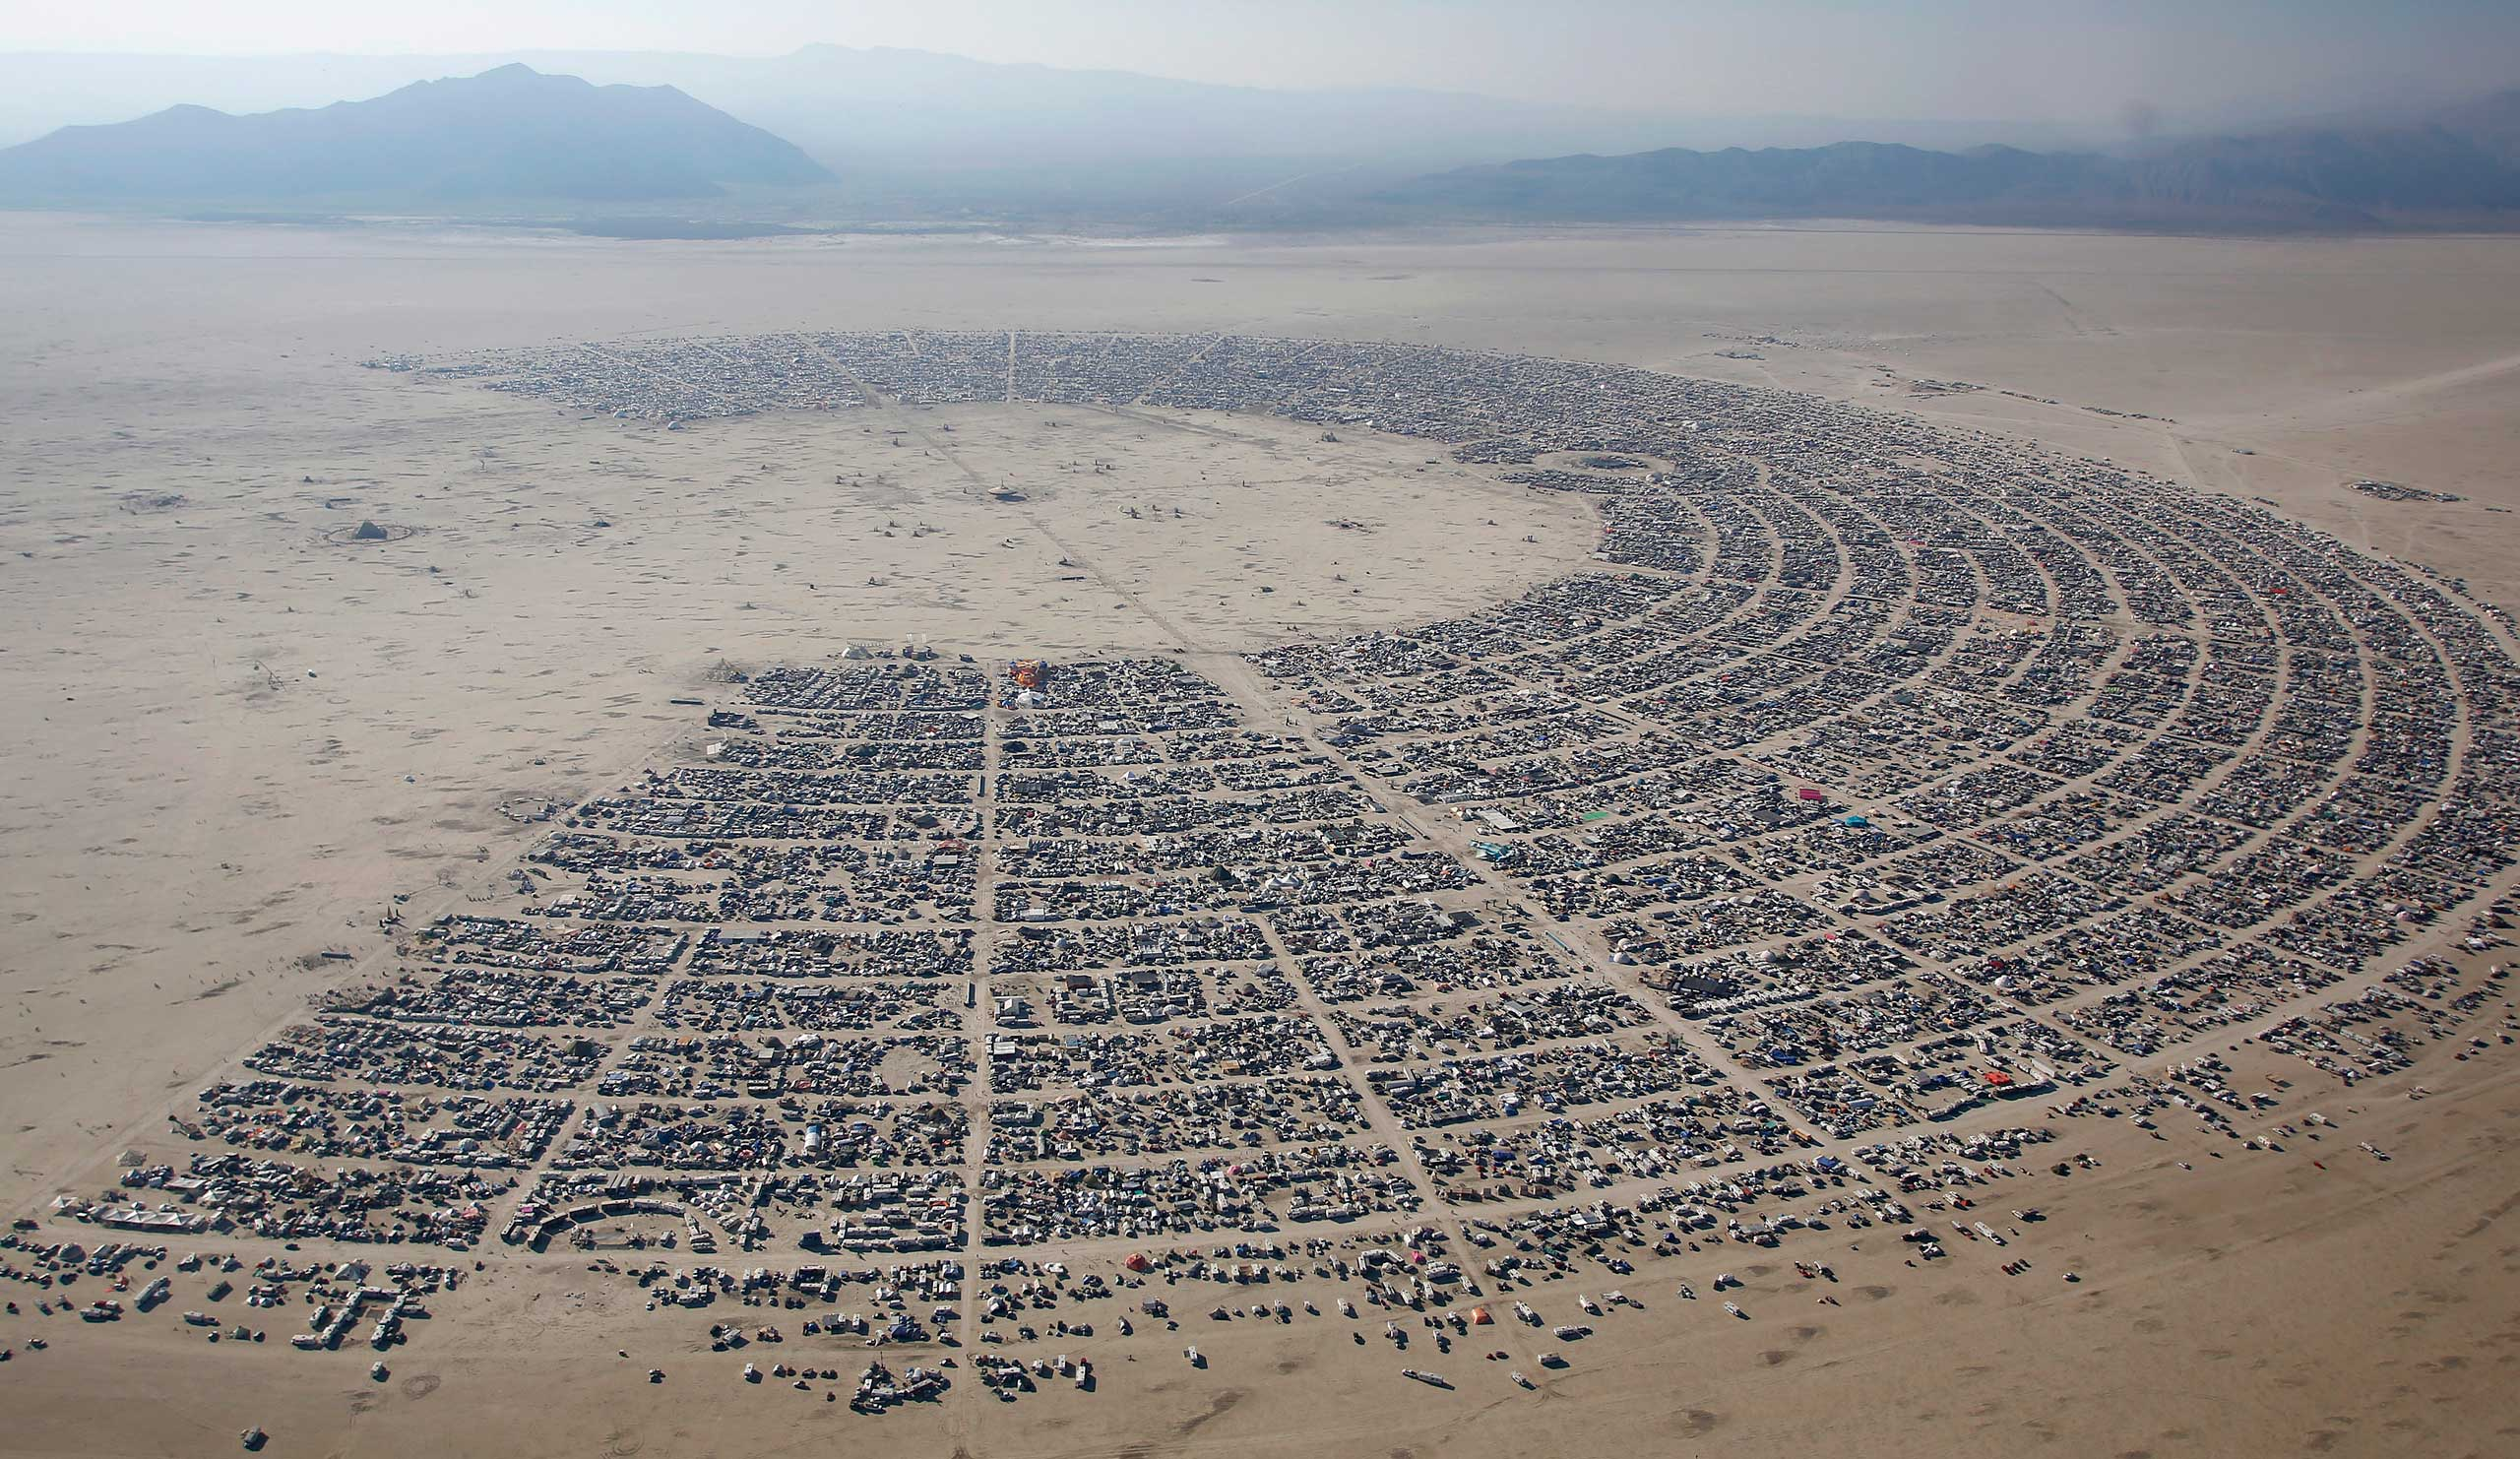 "<strong>Larry Page and Sergey Brin</strong>                                                                      Google CEO Larry Page and co-founder Sergey Brin have been attending the Burning Man Arts Festival since the company's early days. There they fund a ""theme camp"" and how exactly the funds are used is left up to participants' imaginations."